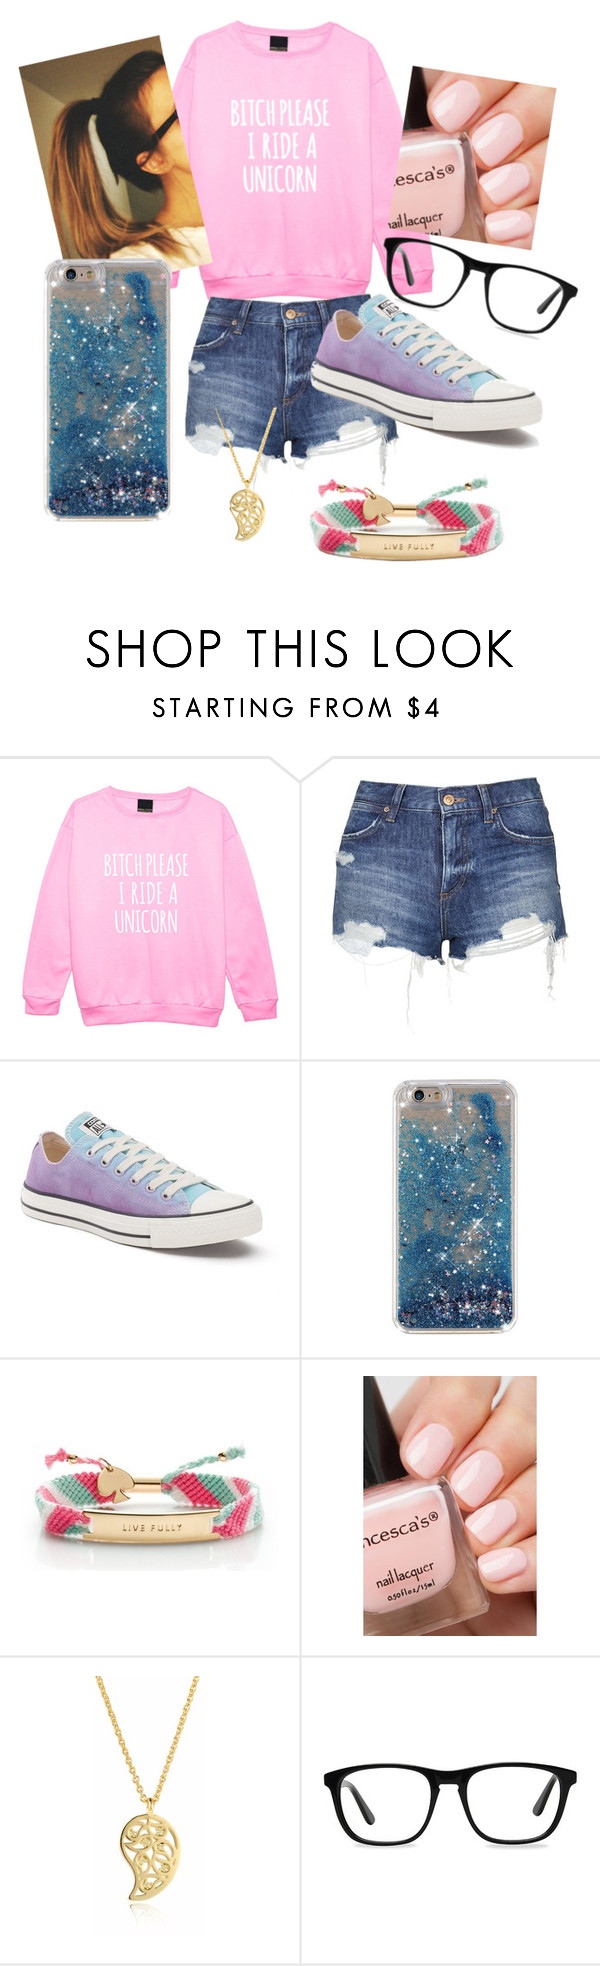 """#❣#"" by lilicabsilveira-1 on Polyvore featuring Topshop, Converse, Kate Spade, Sonal Bhaskaran and Ace"